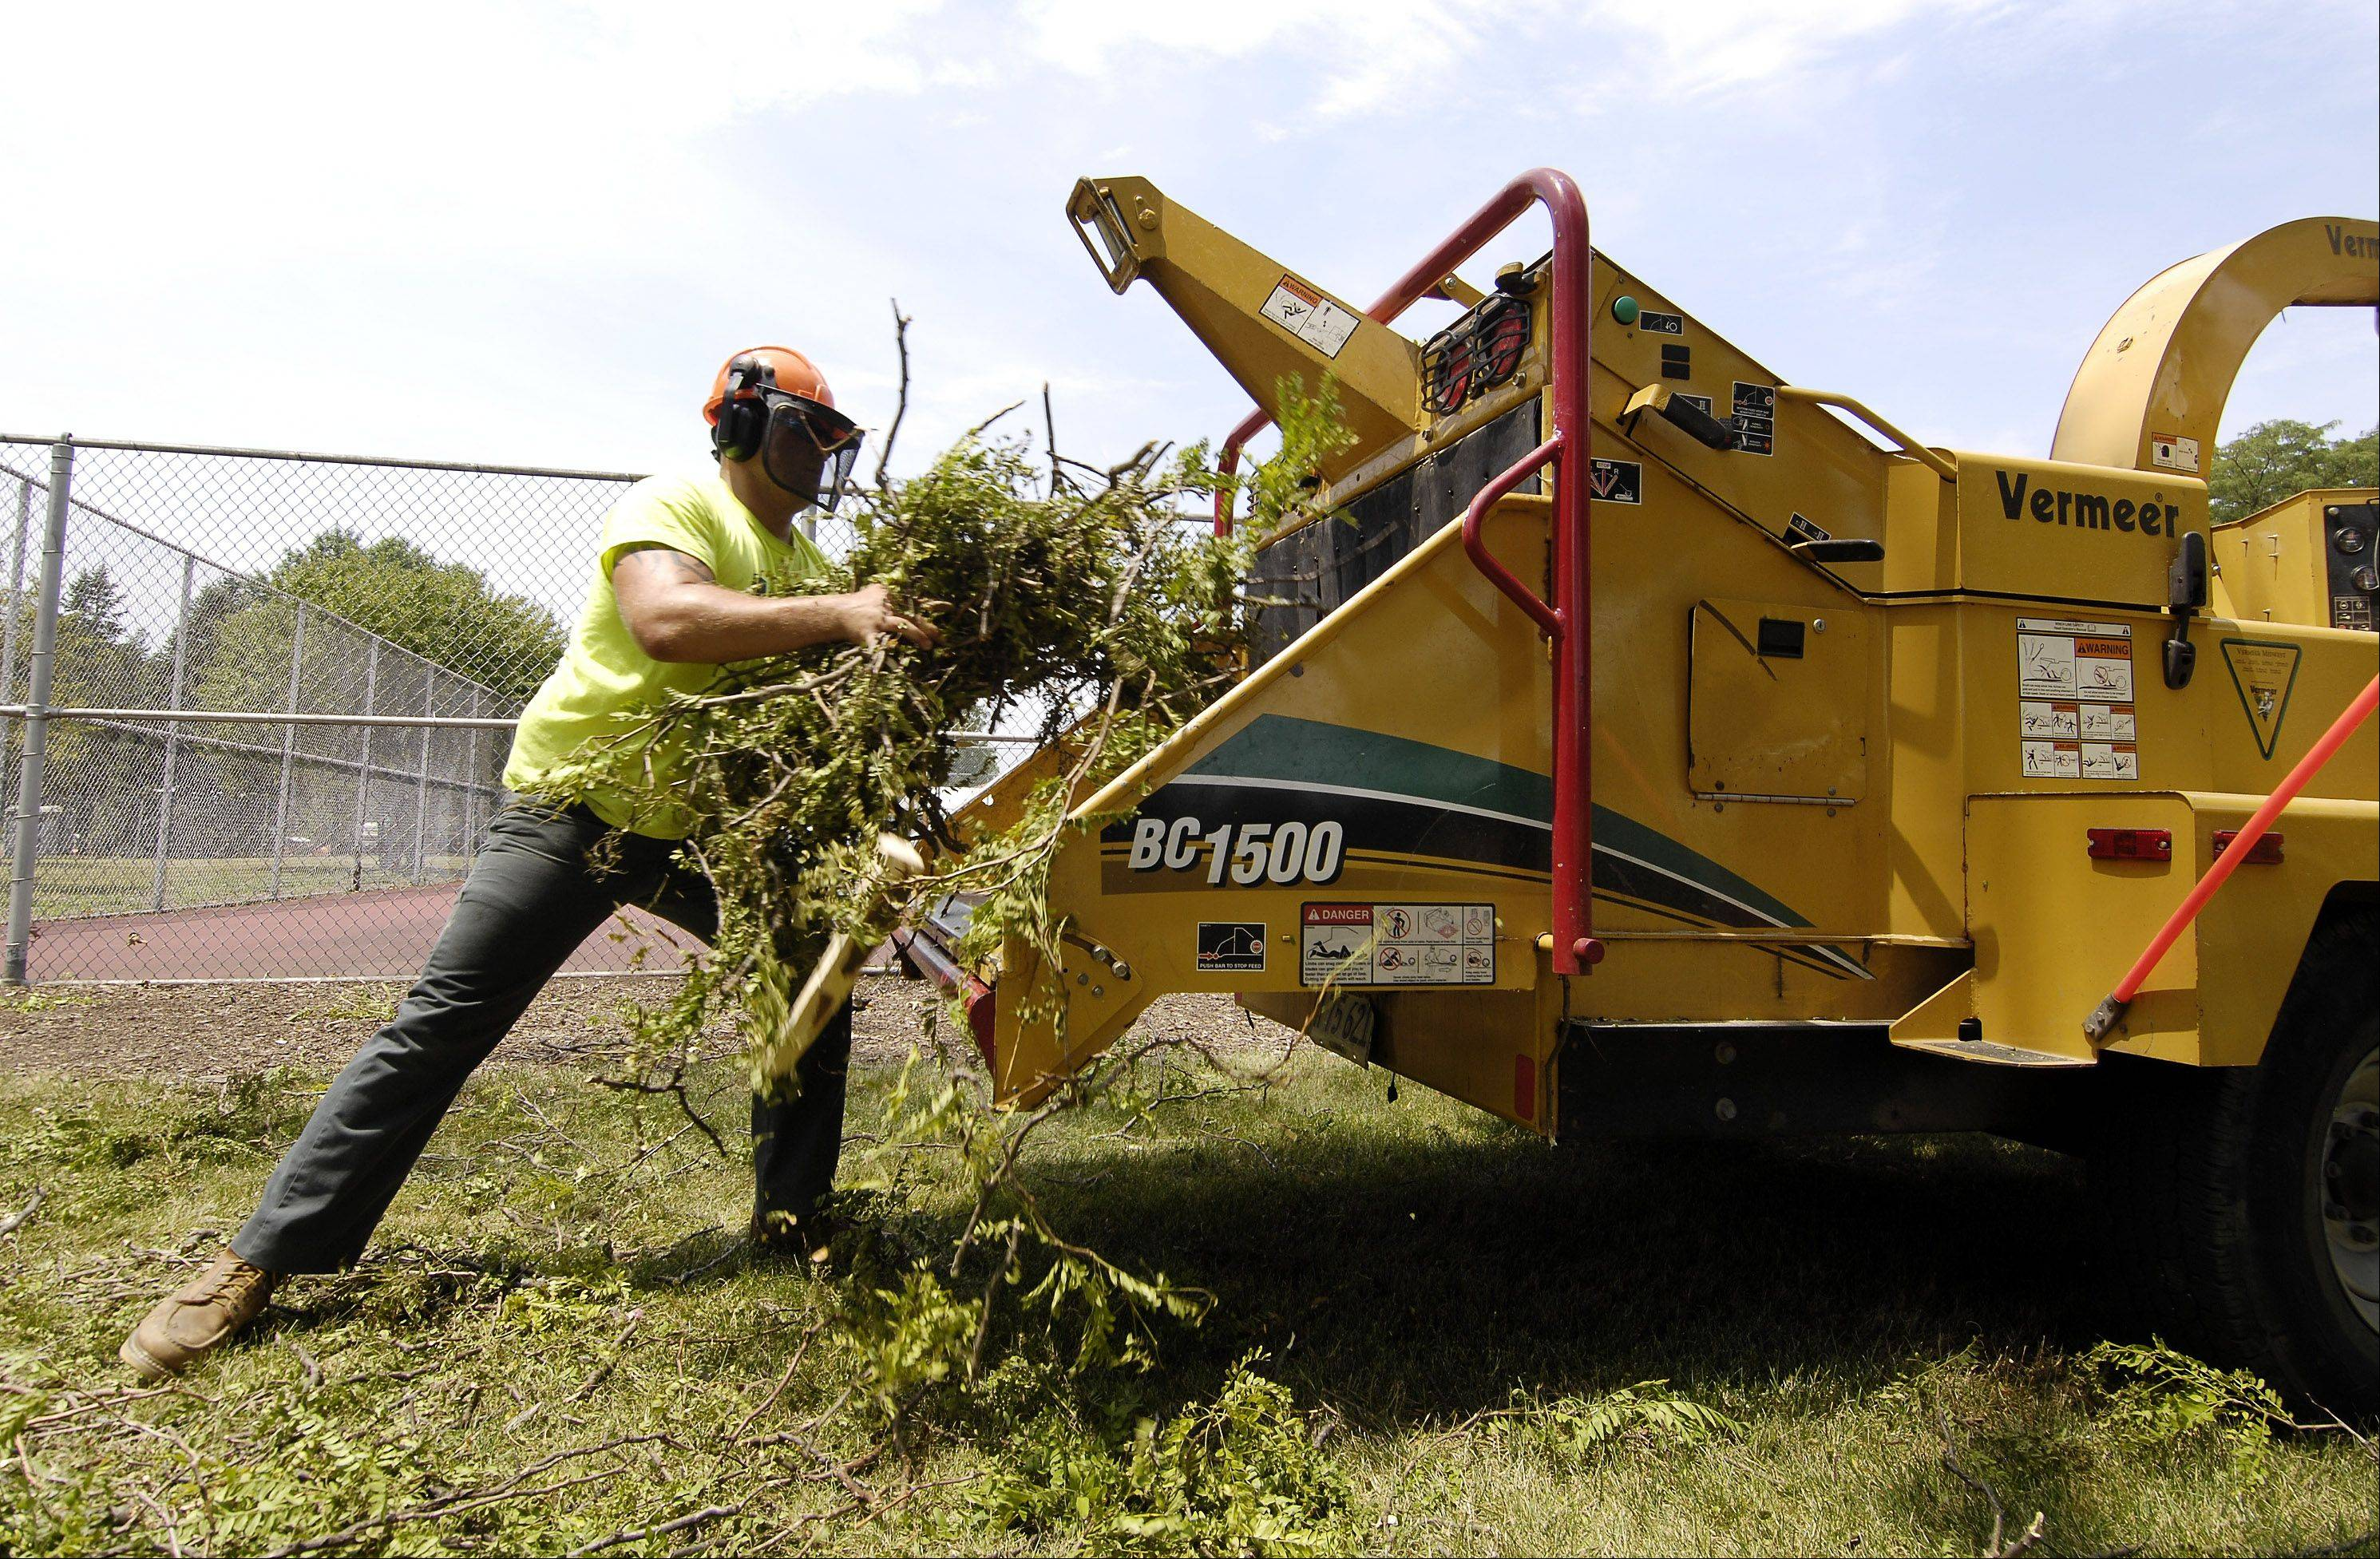 Lombard Park District workers, including Chad Flint, were clearing fallen branches Tuesday at Madison Meadow Park in preparation for the Taste of Lombard.